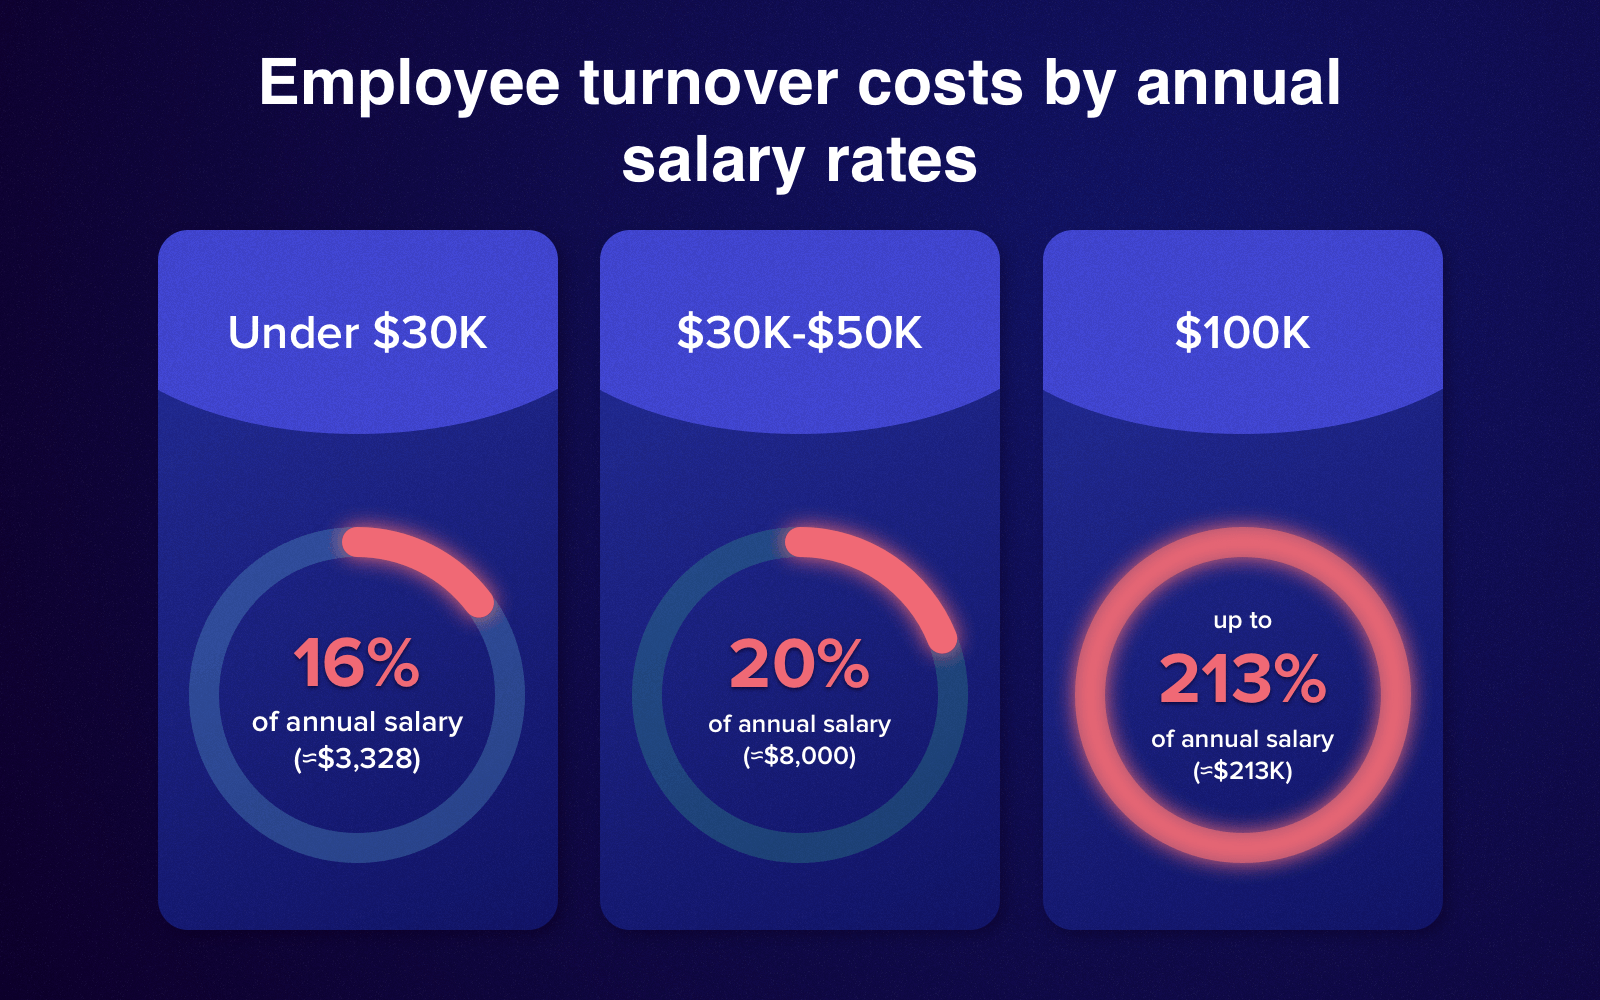 HR technology can minimize turnover expenses